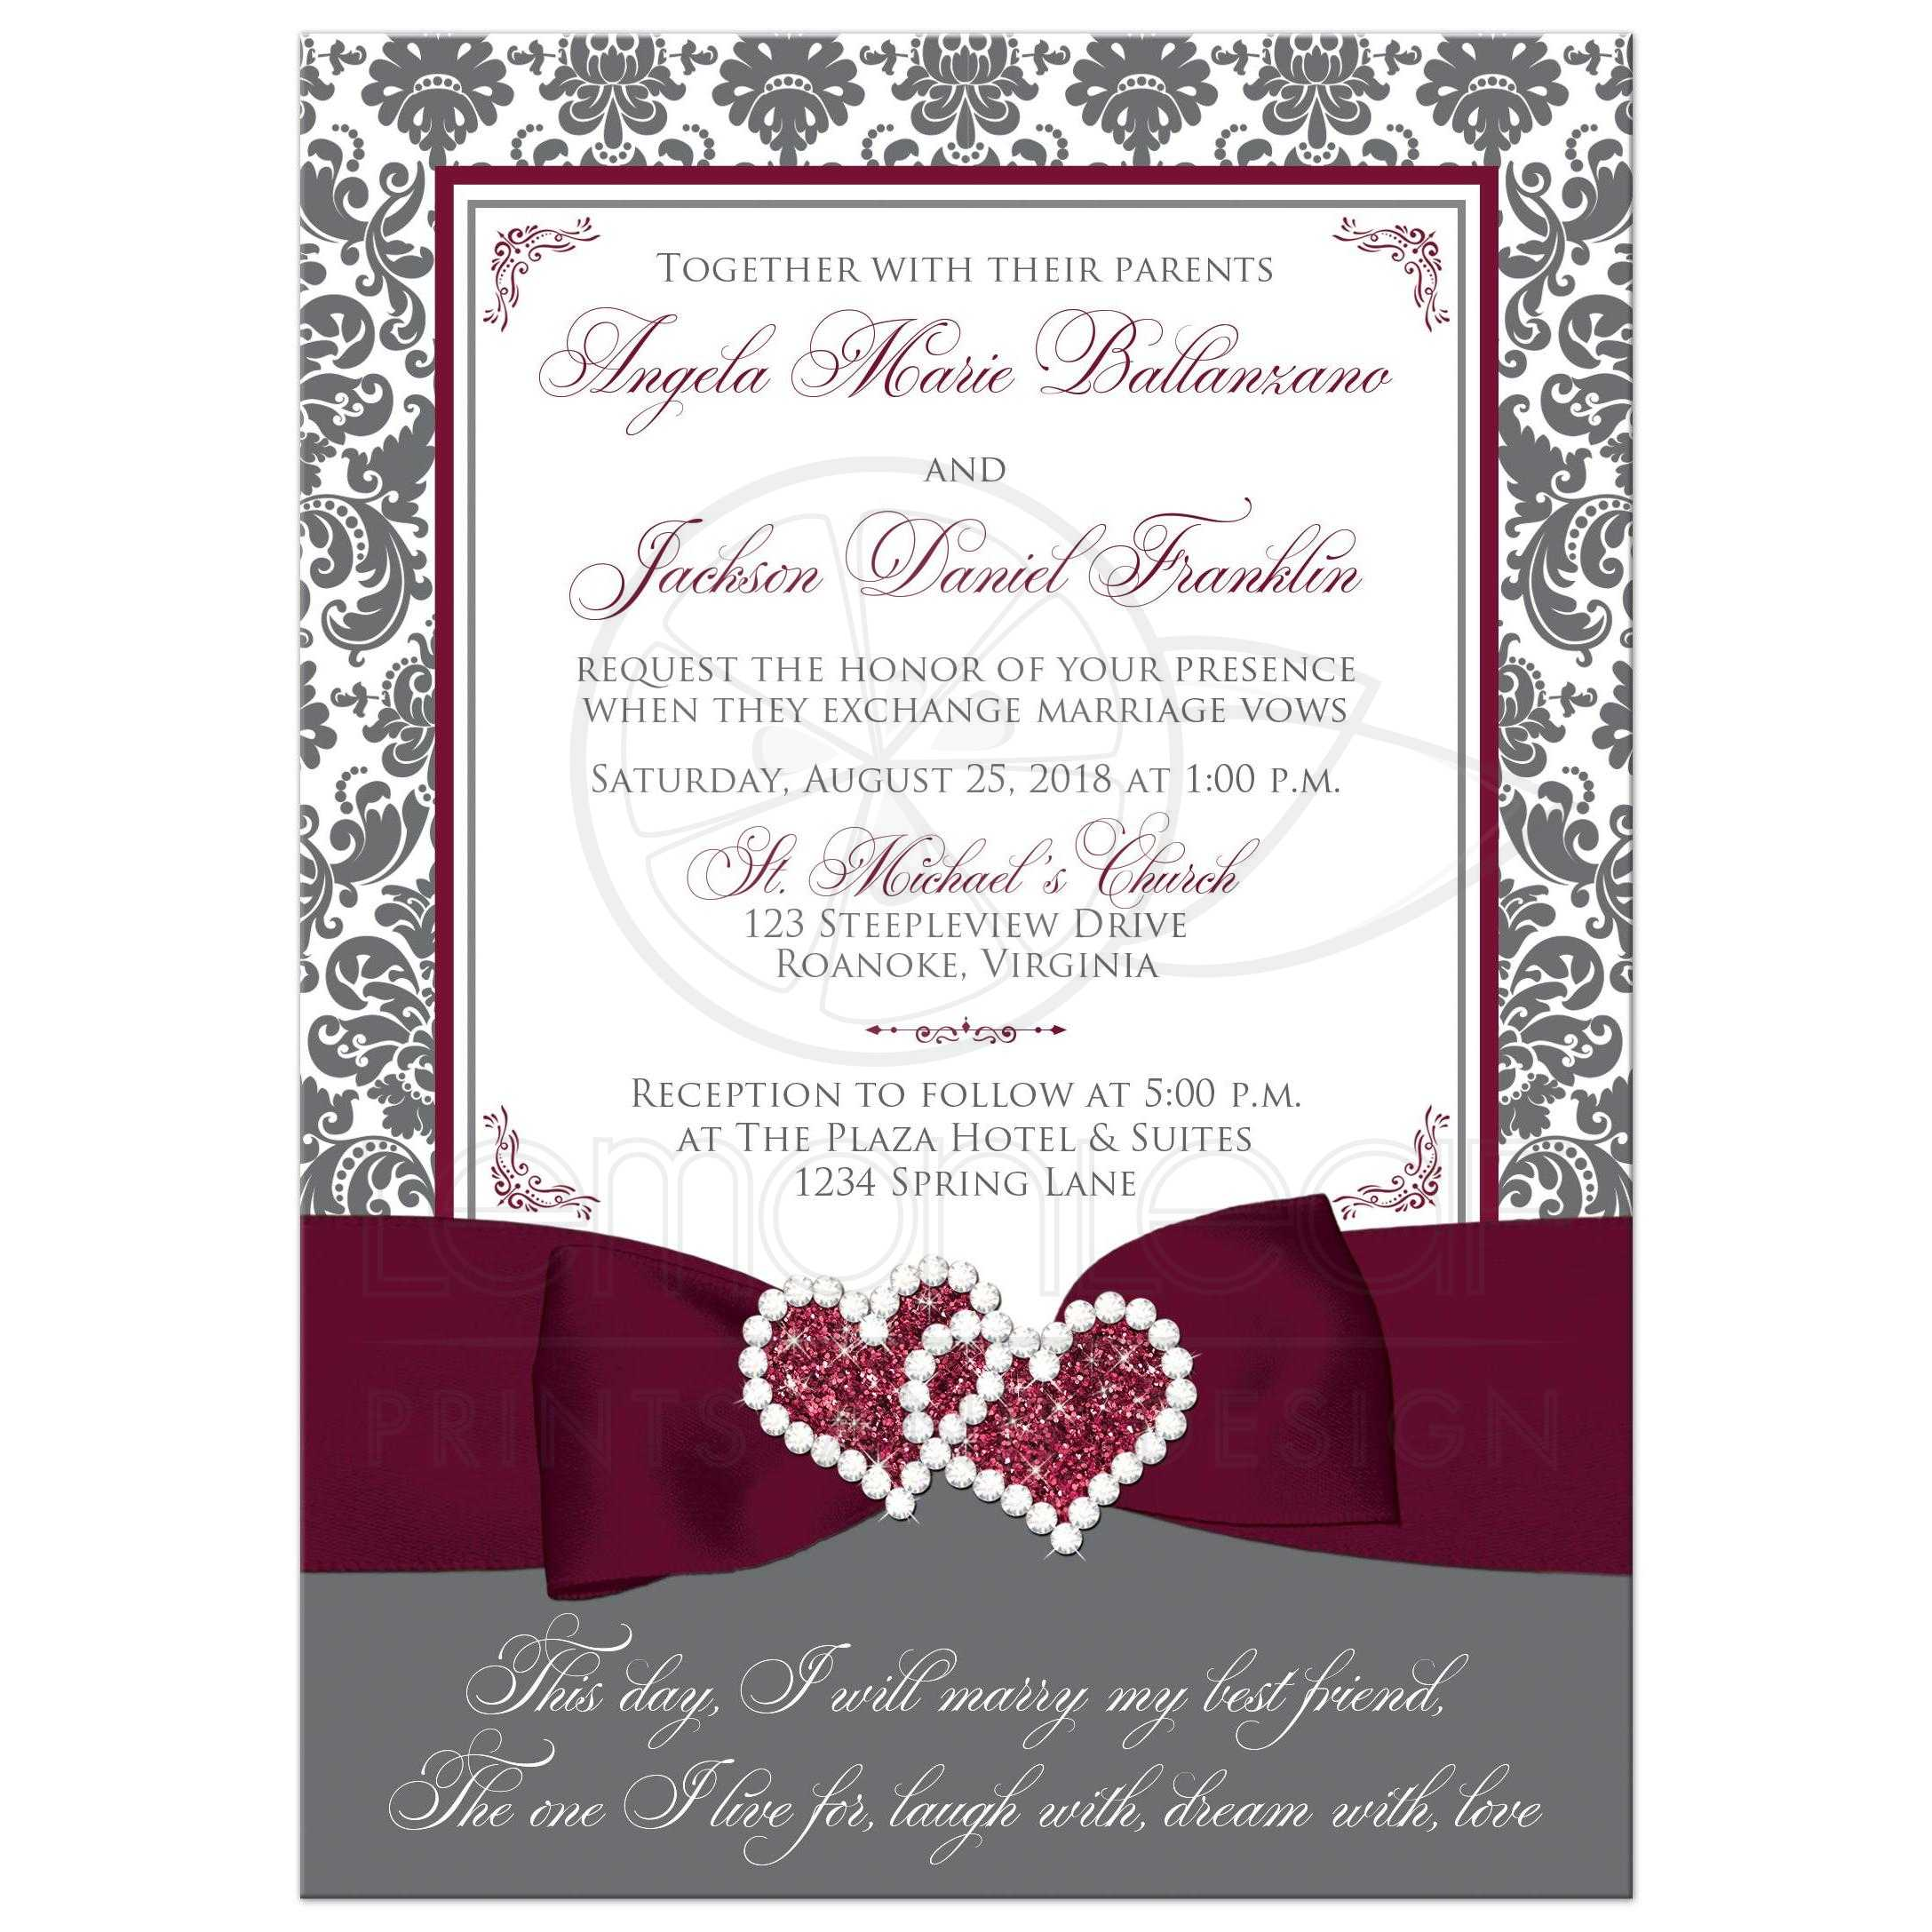 Home Decor Party Business Gray White Damask Wedding Invitation Printed On Burgundy